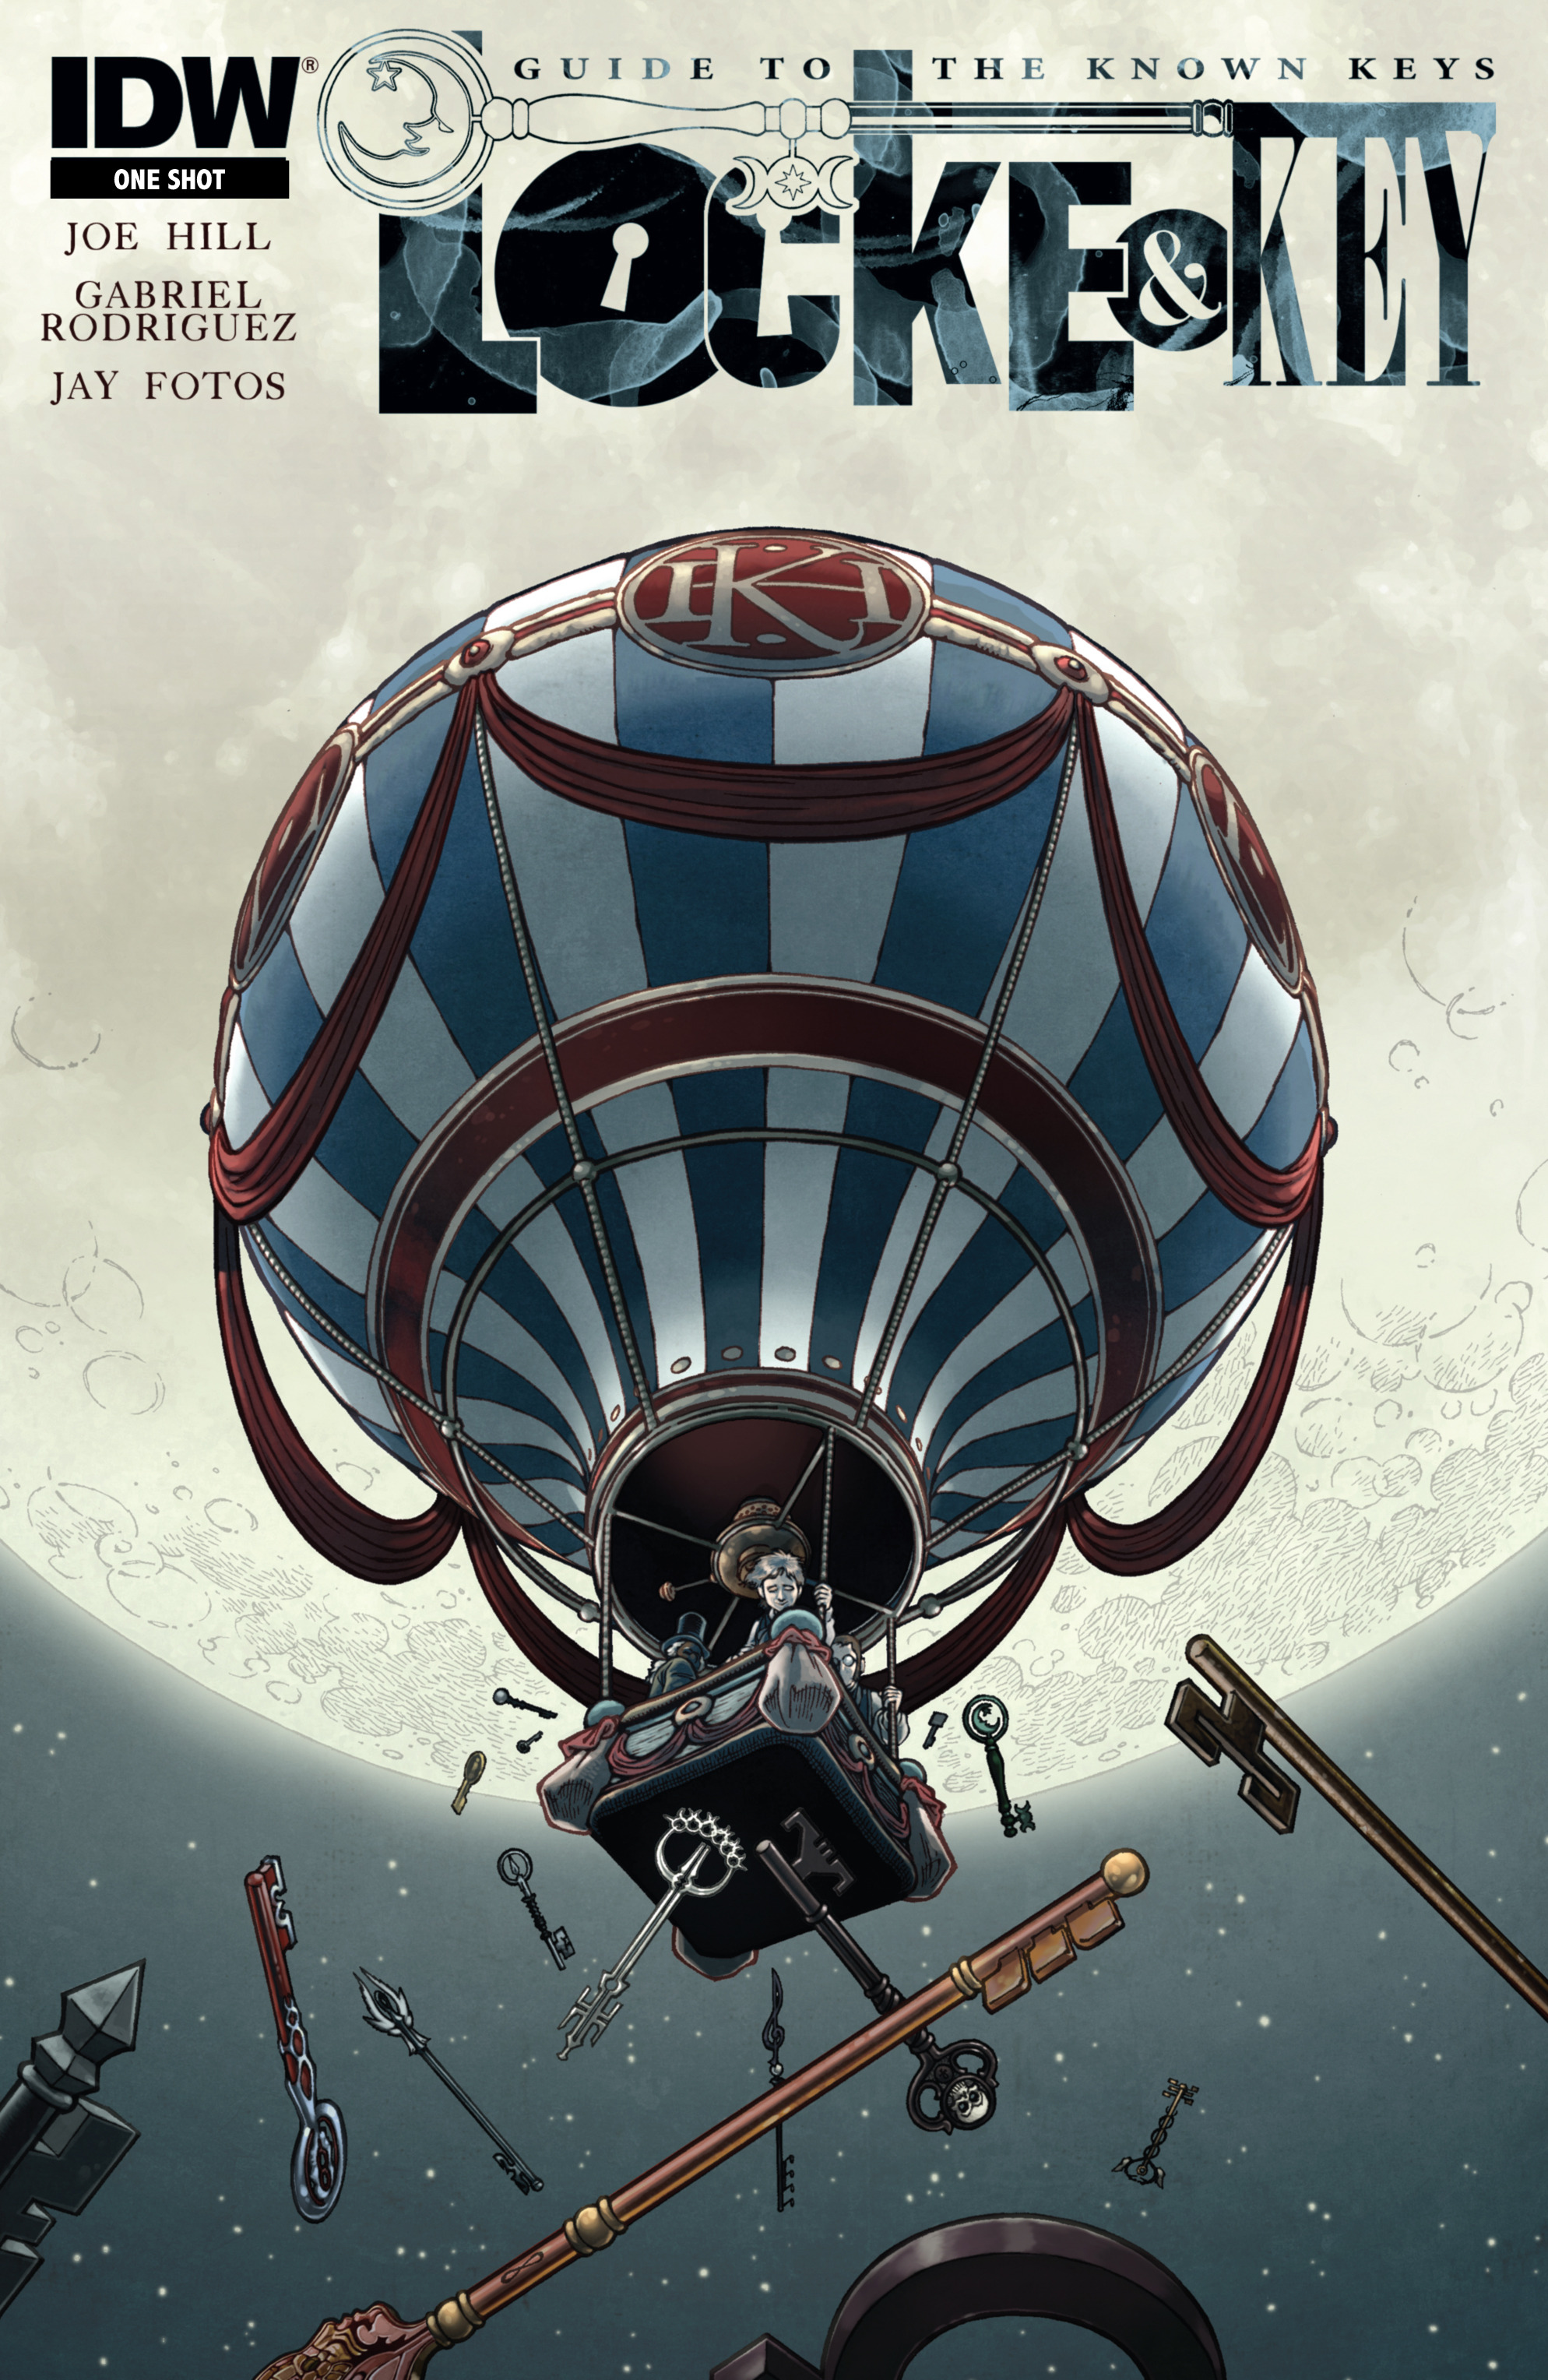 Read online Locke & Key: Guide to the Known Keys comic -  Issue # Full - 1